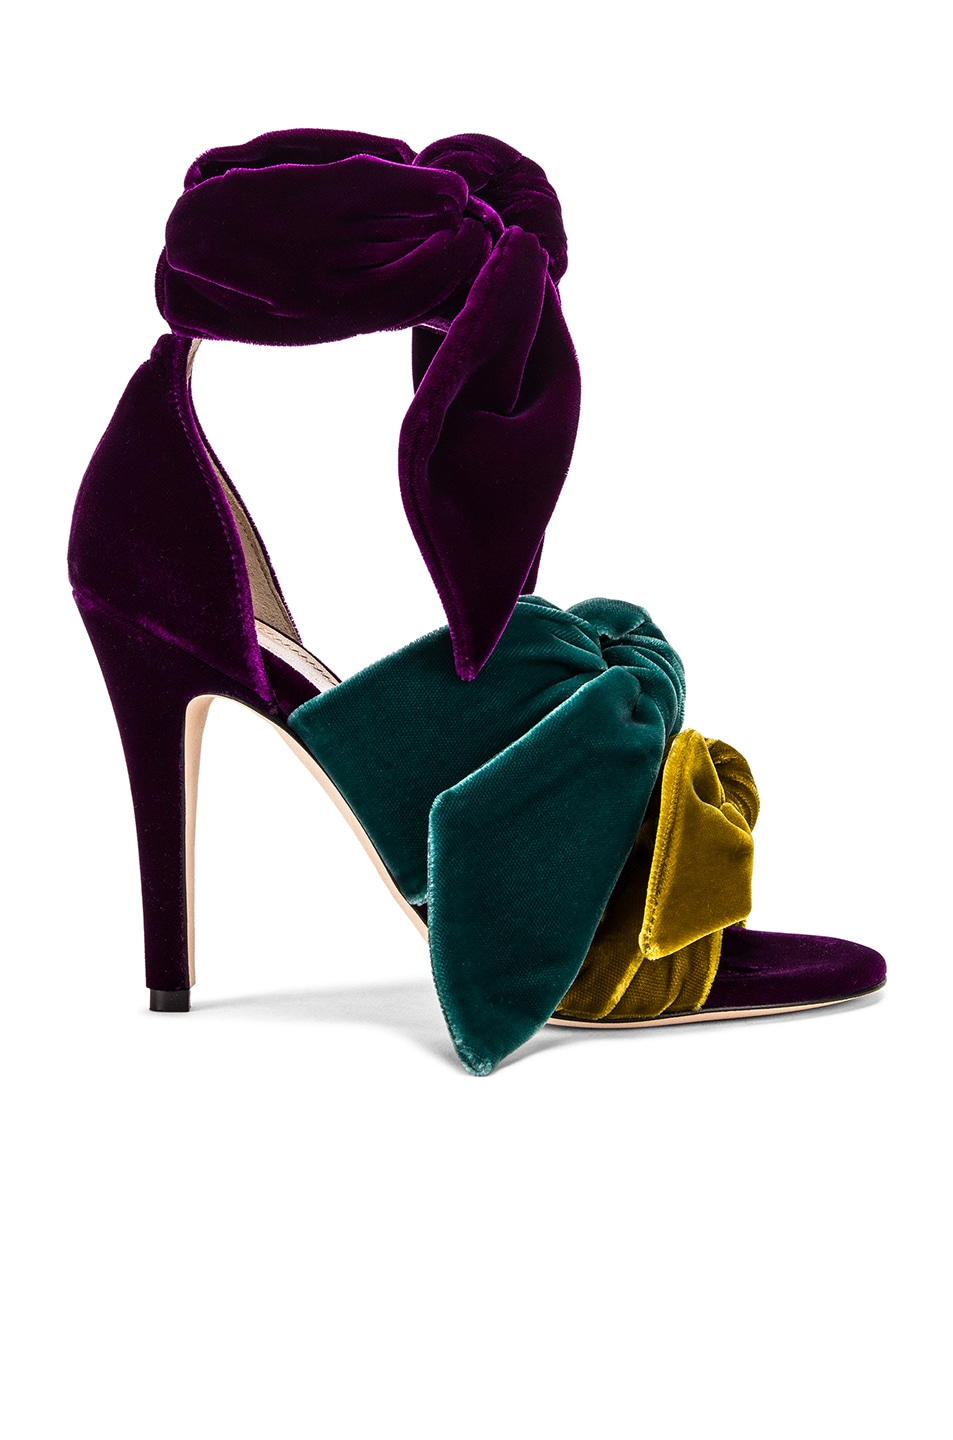 Image 1 of SILVIA TCHERASSI x Gia Couture Bowie Heel in Multi Jewel